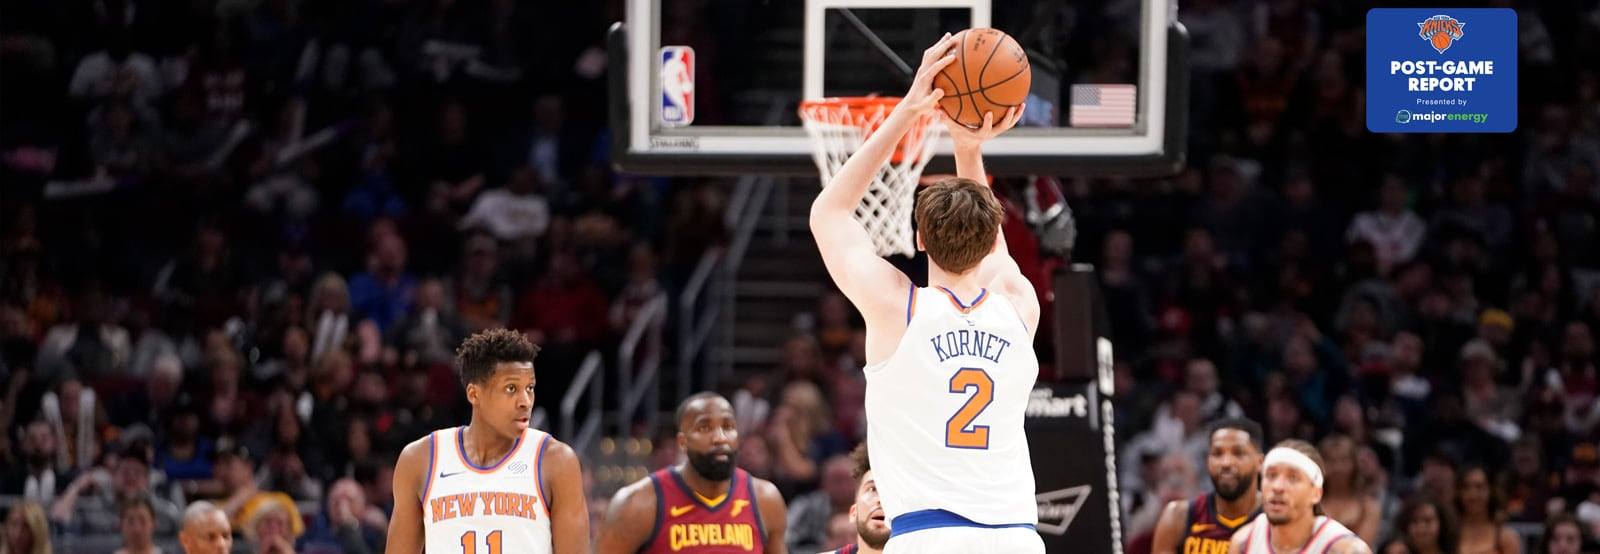 Knicks Close 2017-18 Campaign with Win Over Cavs